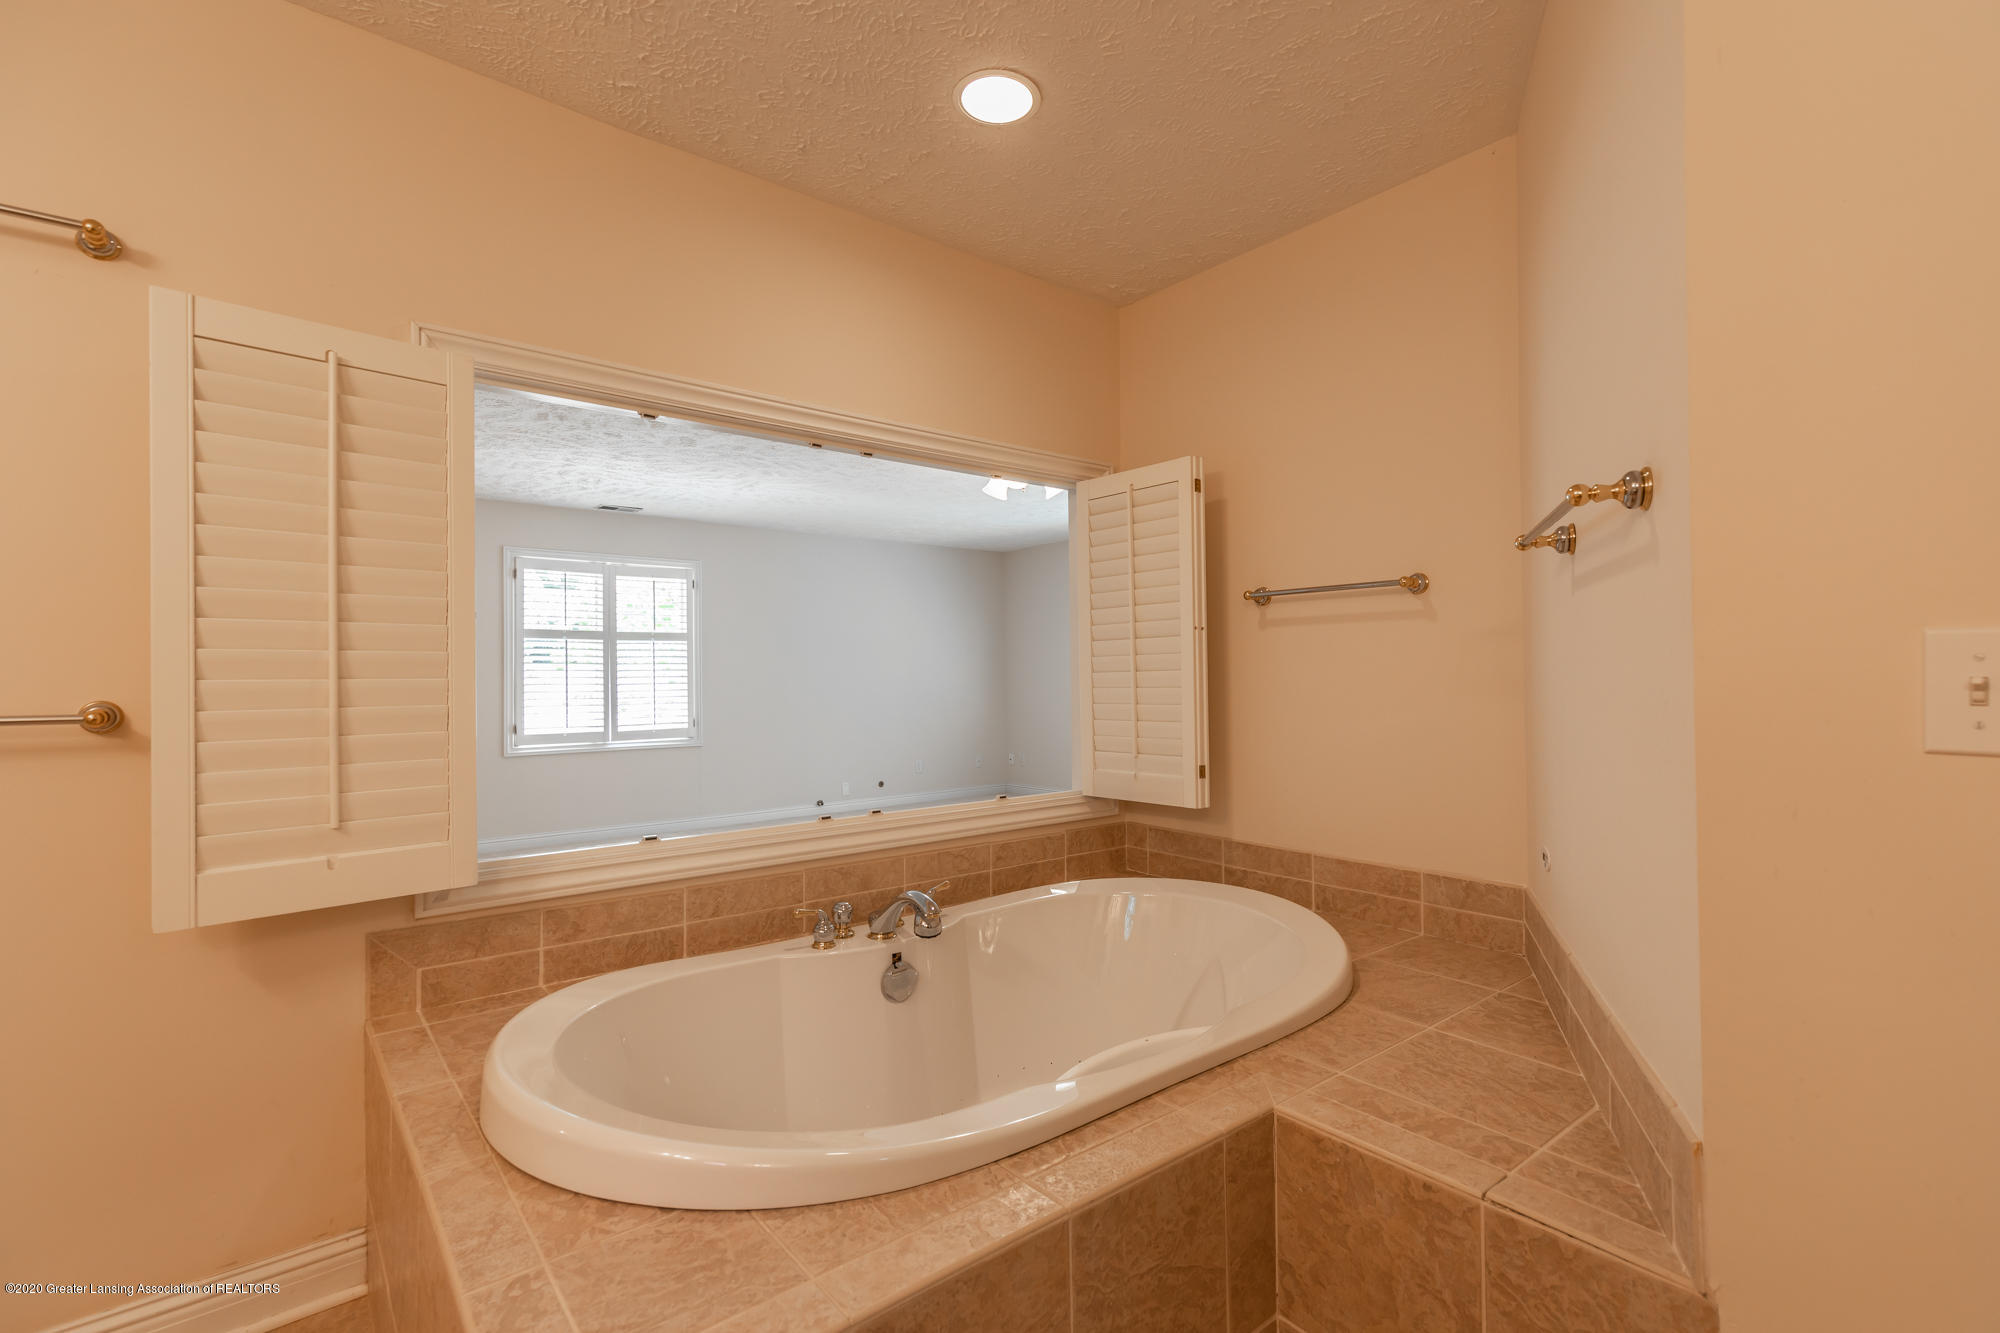 2072 Riverwood Dr - riverwoodmasterbath2(1of1) - 24